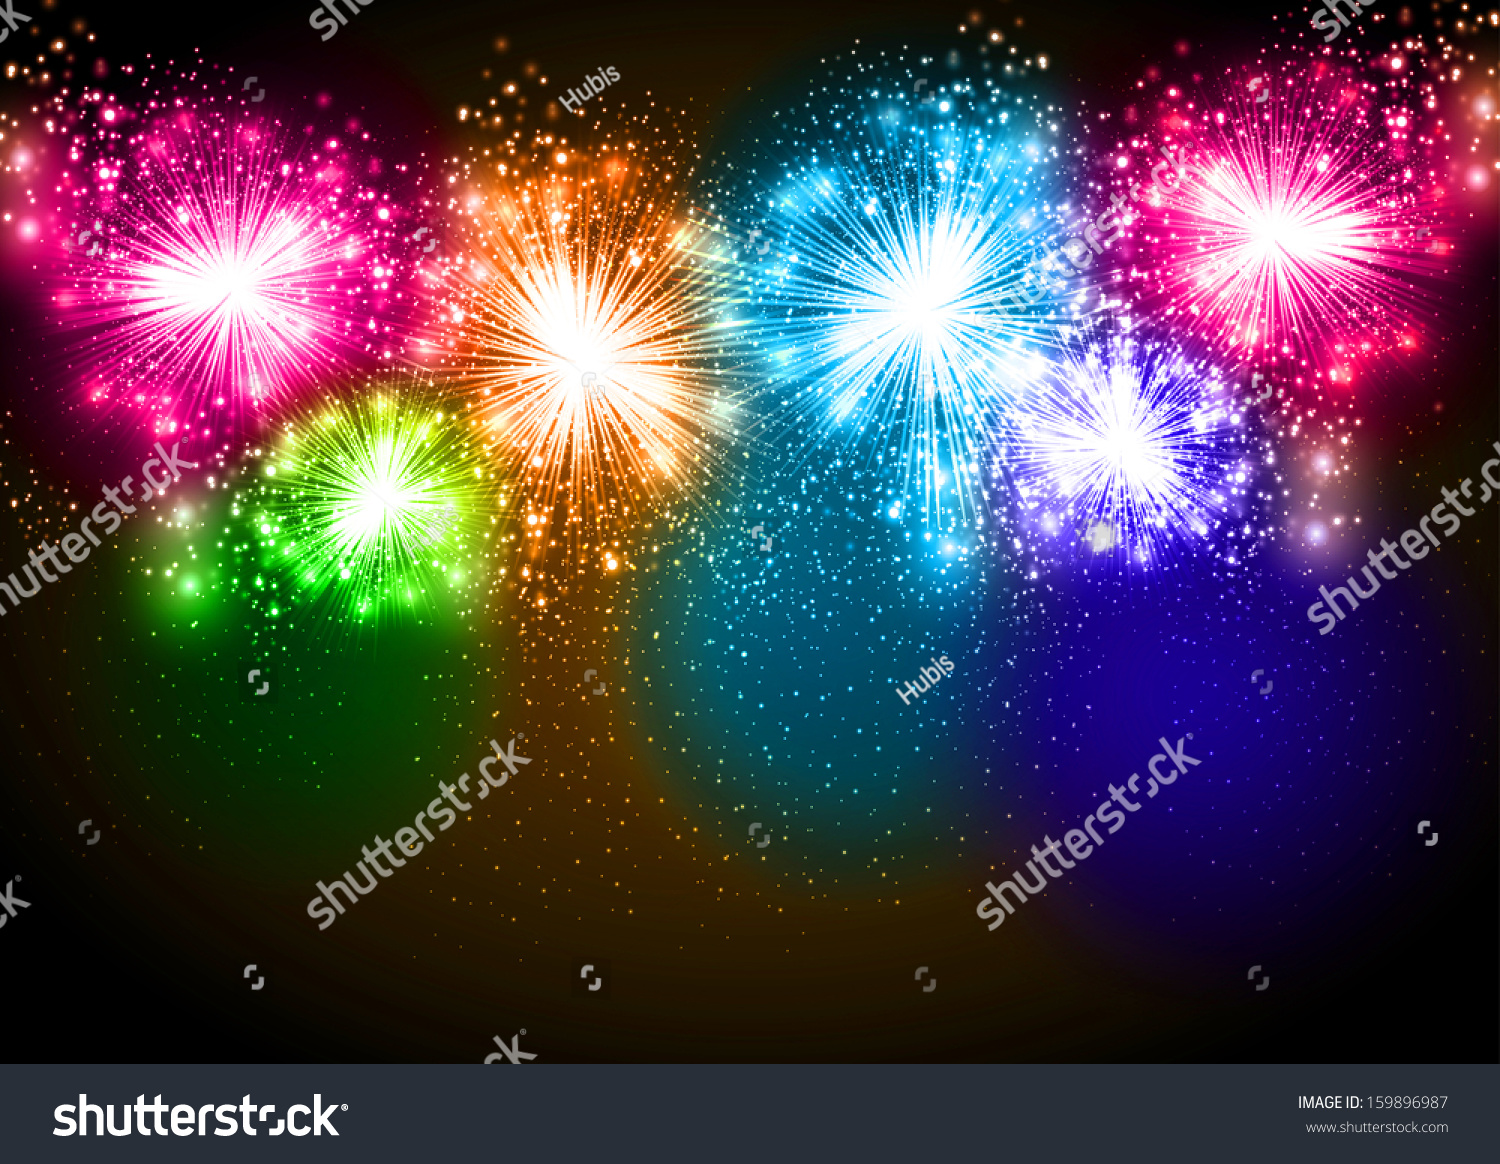 Wallpaper Salute Sky Holiday Colorful 3376x4220: Realistic Vector Fireworks Exploding In The Night Sky